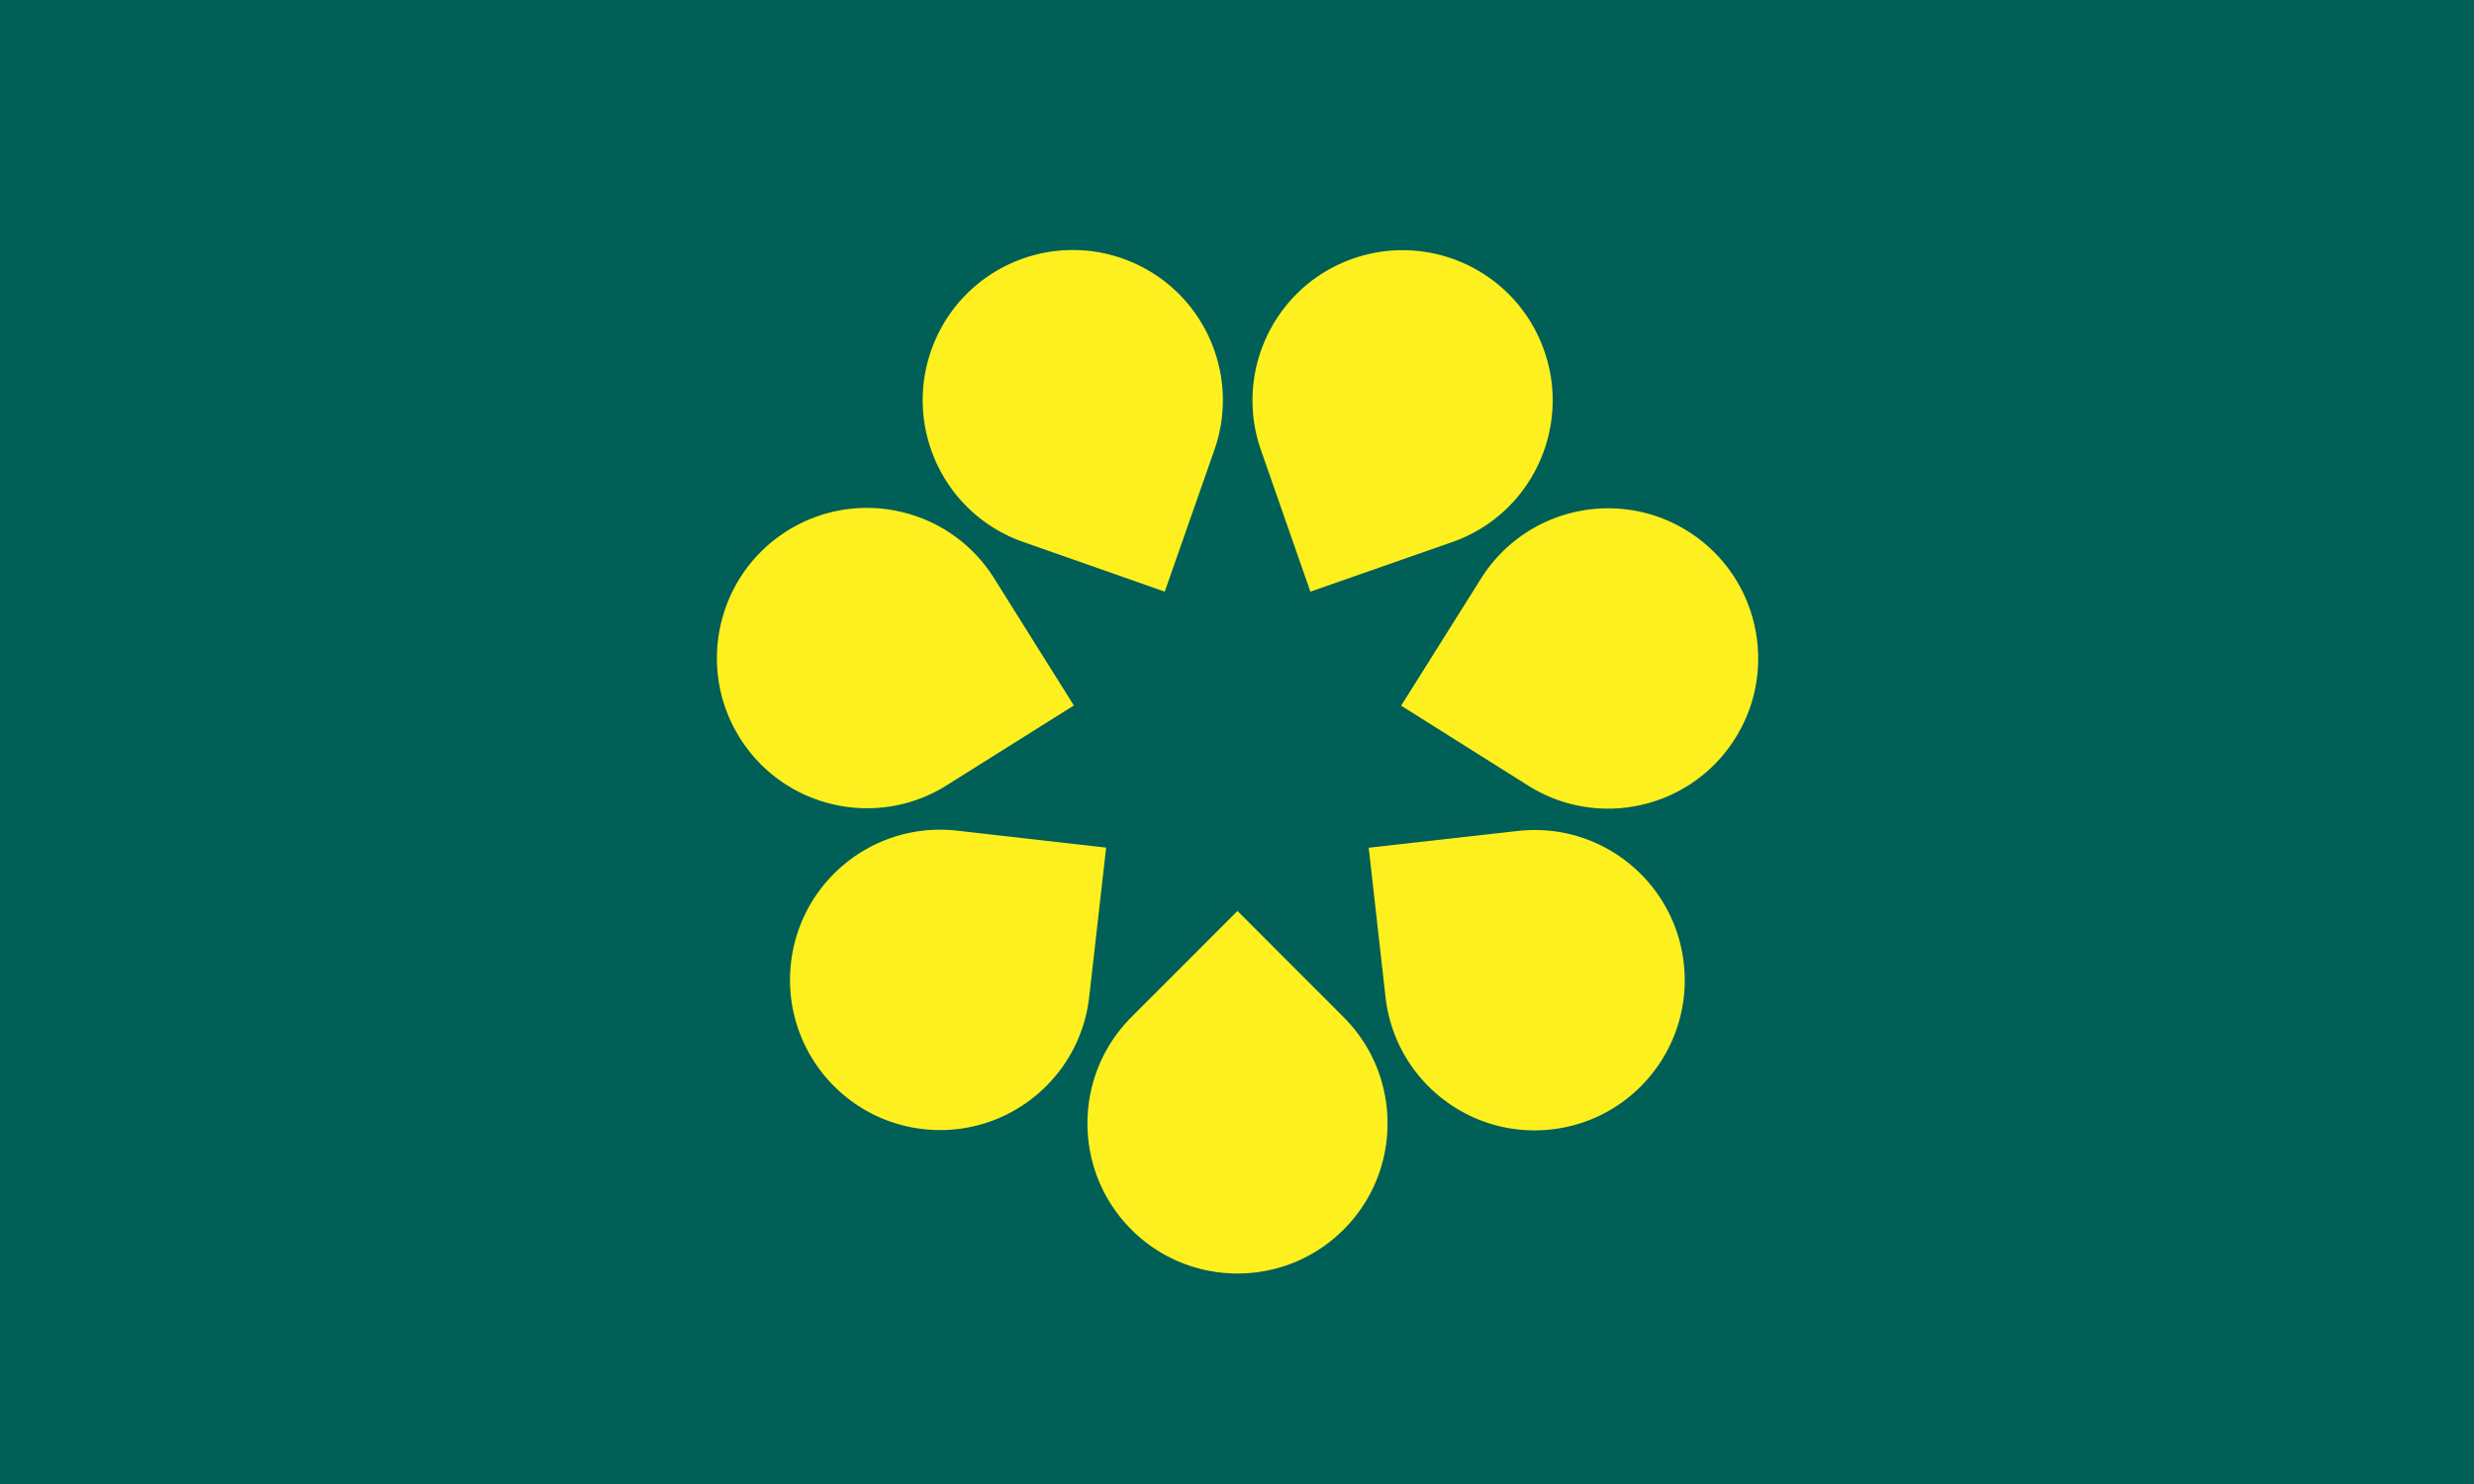 GoldenWattle_Flag_Green_Myrtle_NEW_2500px.jpg